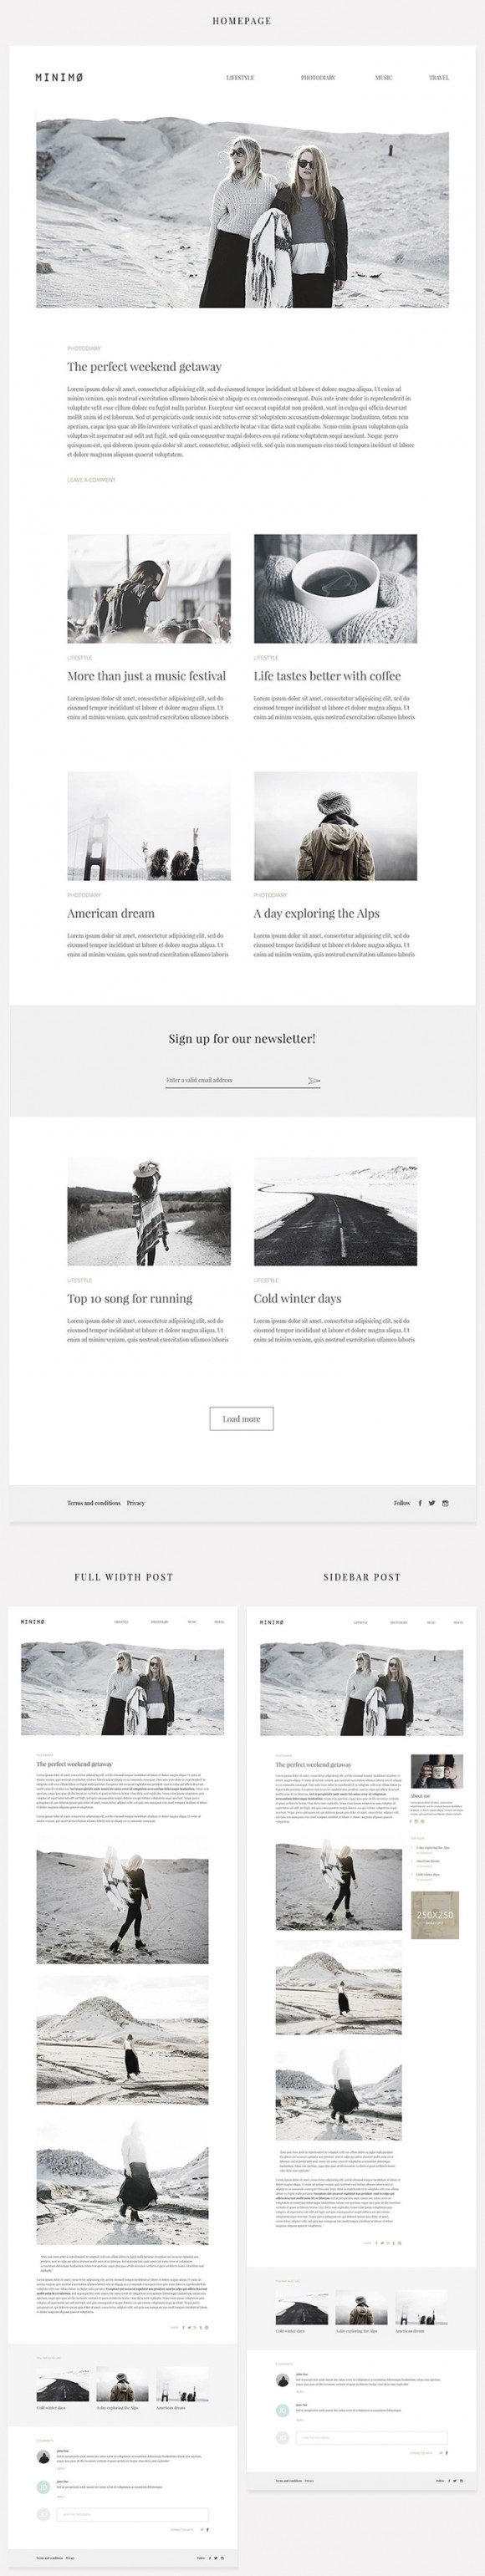 Minimo: Free PSD blog template (Full view)